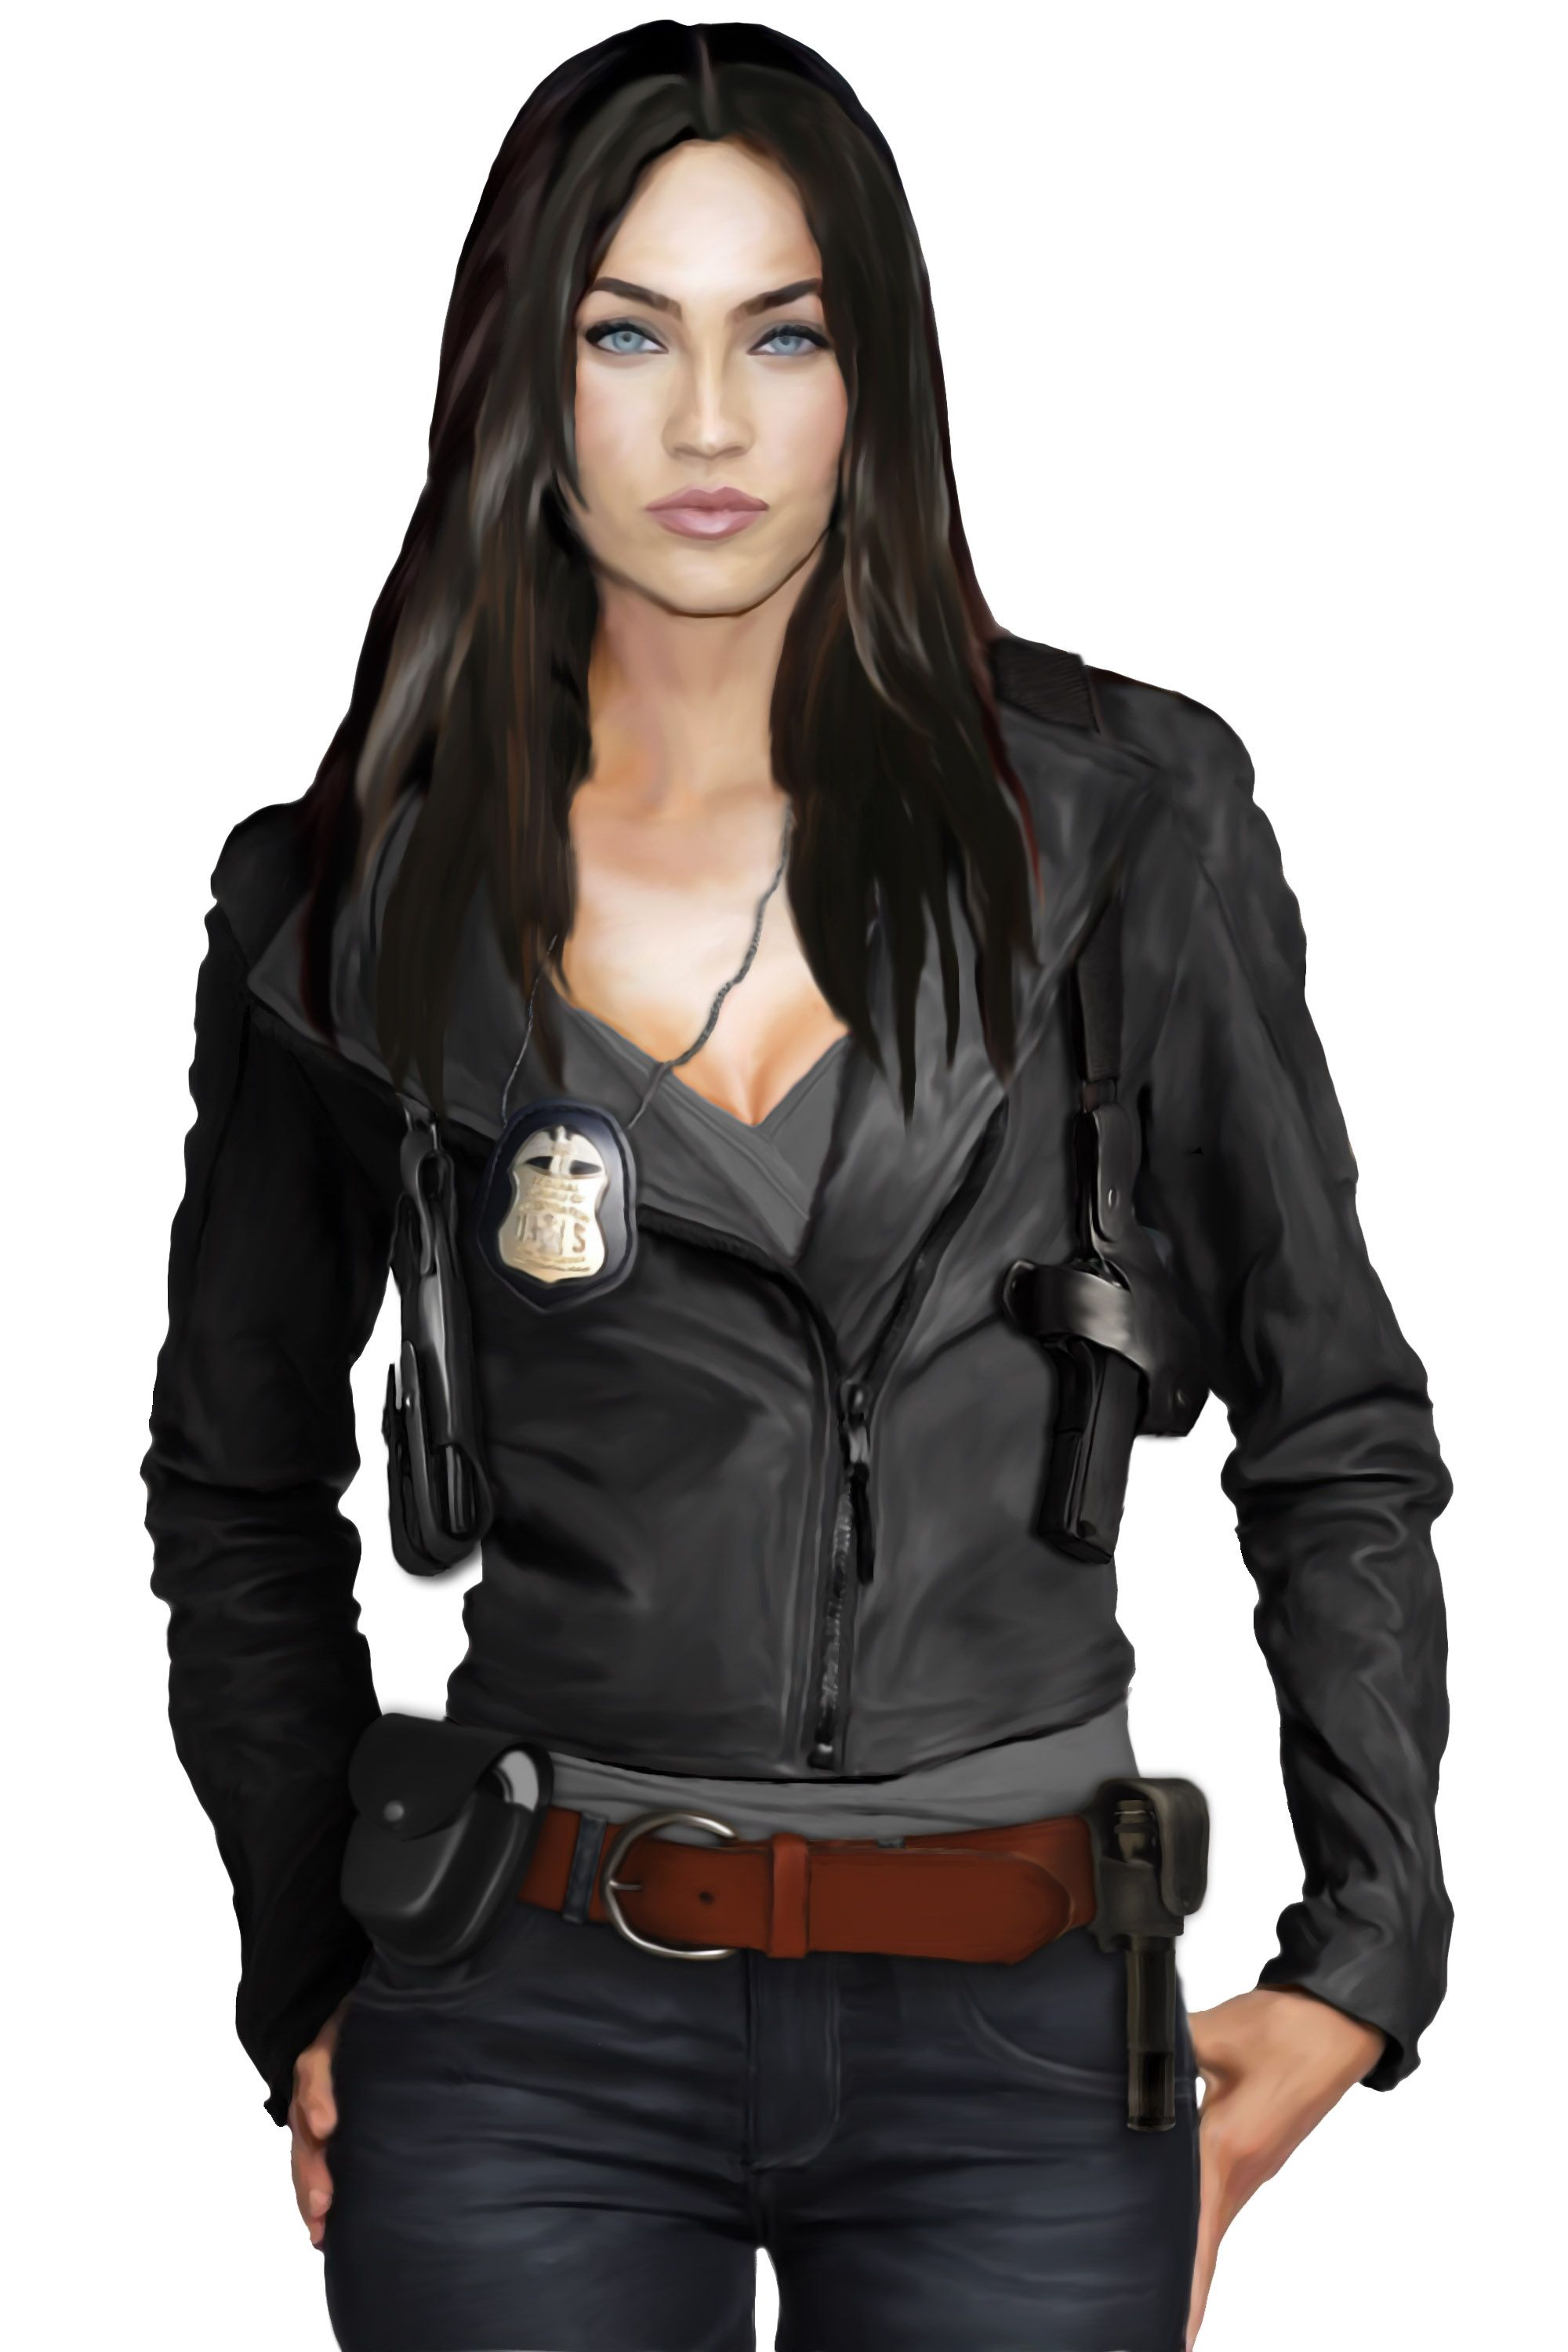 Characters Fashion Leather Jacket Leather [ 3000 x 2000 Pixel ]